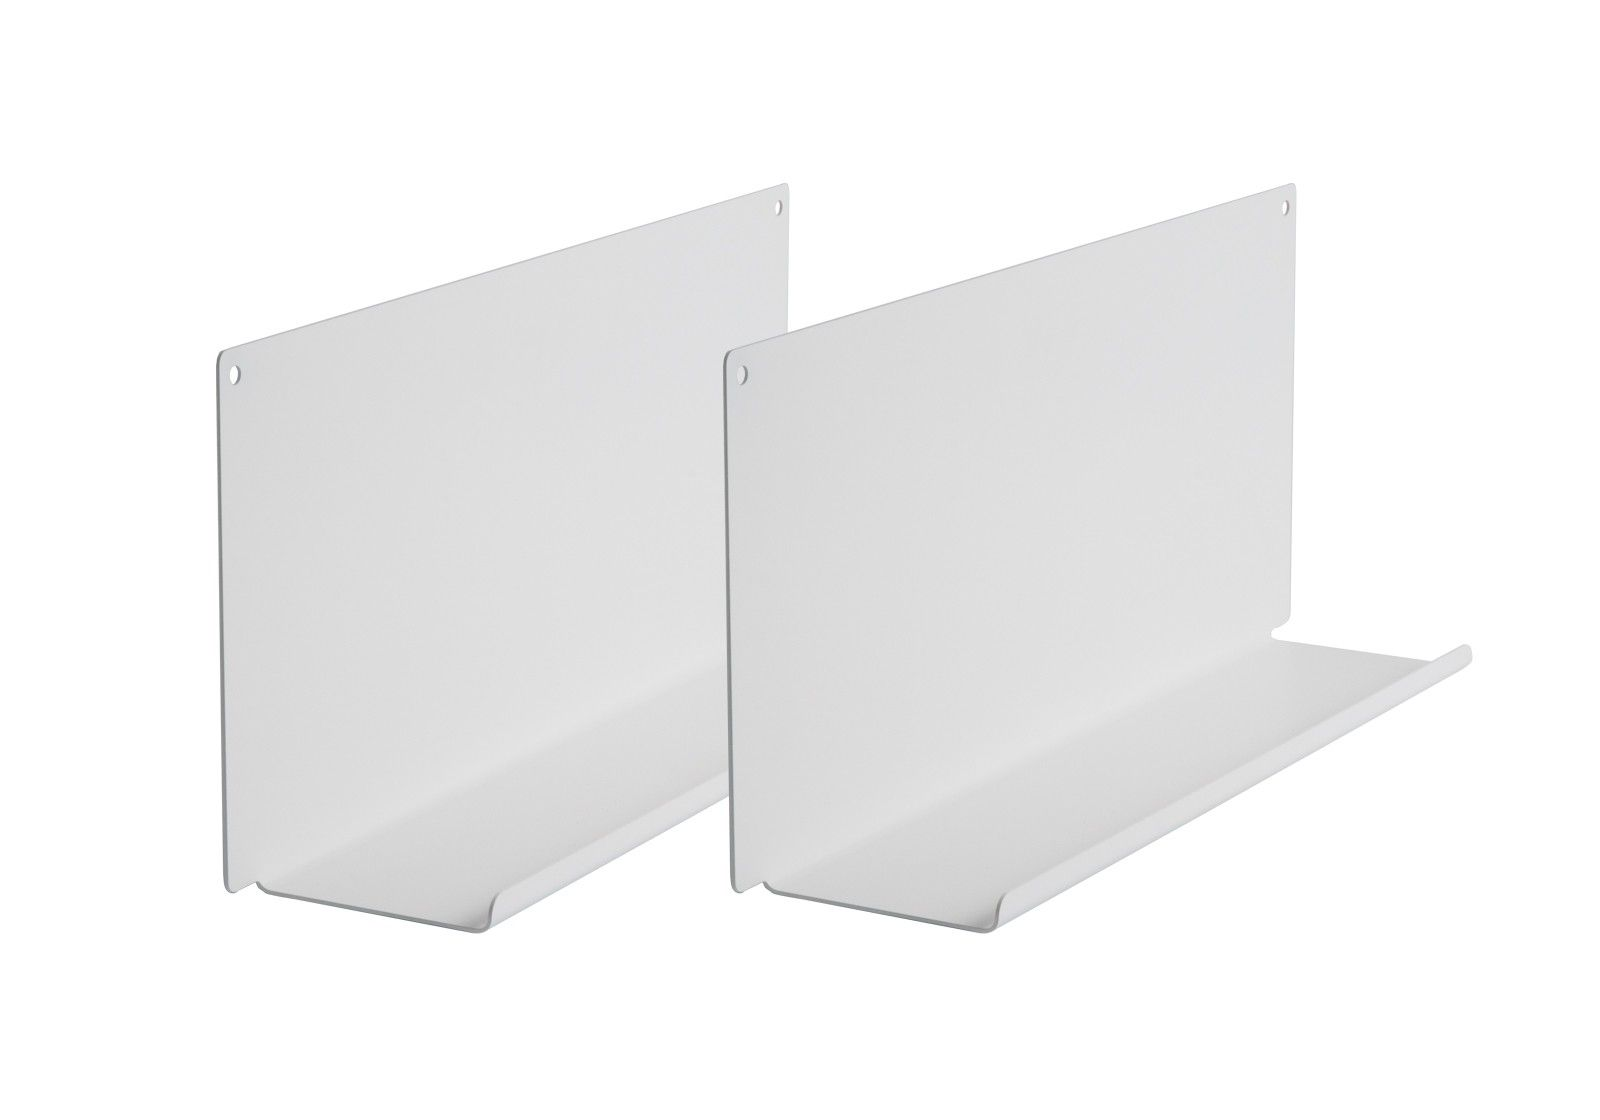 Bathroom wall shelves  LE    Set. Bathroom wall shelves  LE    Set of 2